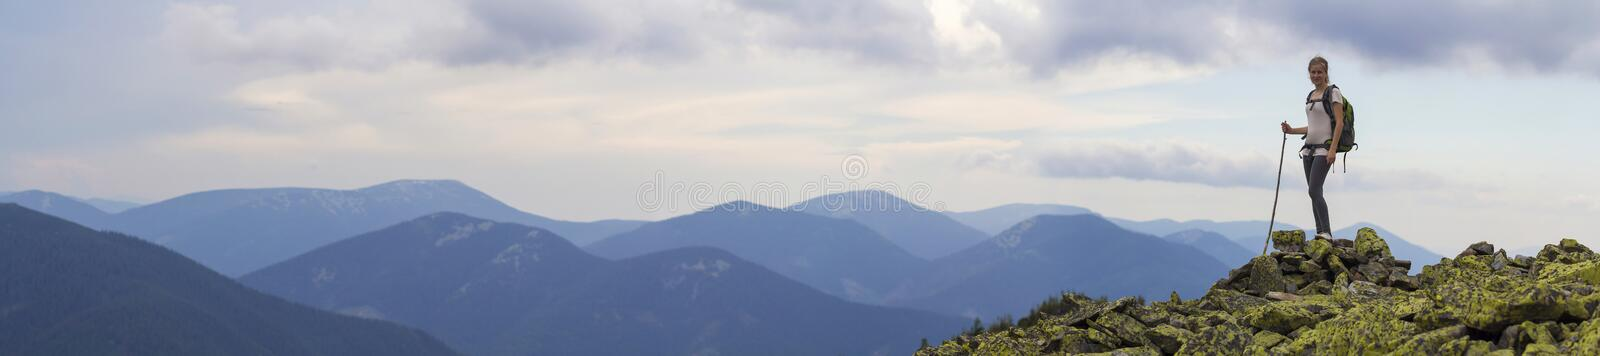 Young slim blond tourist girl with backpack and stick standing on rocky top against bright blue morning sky on foggy mountain stock photos